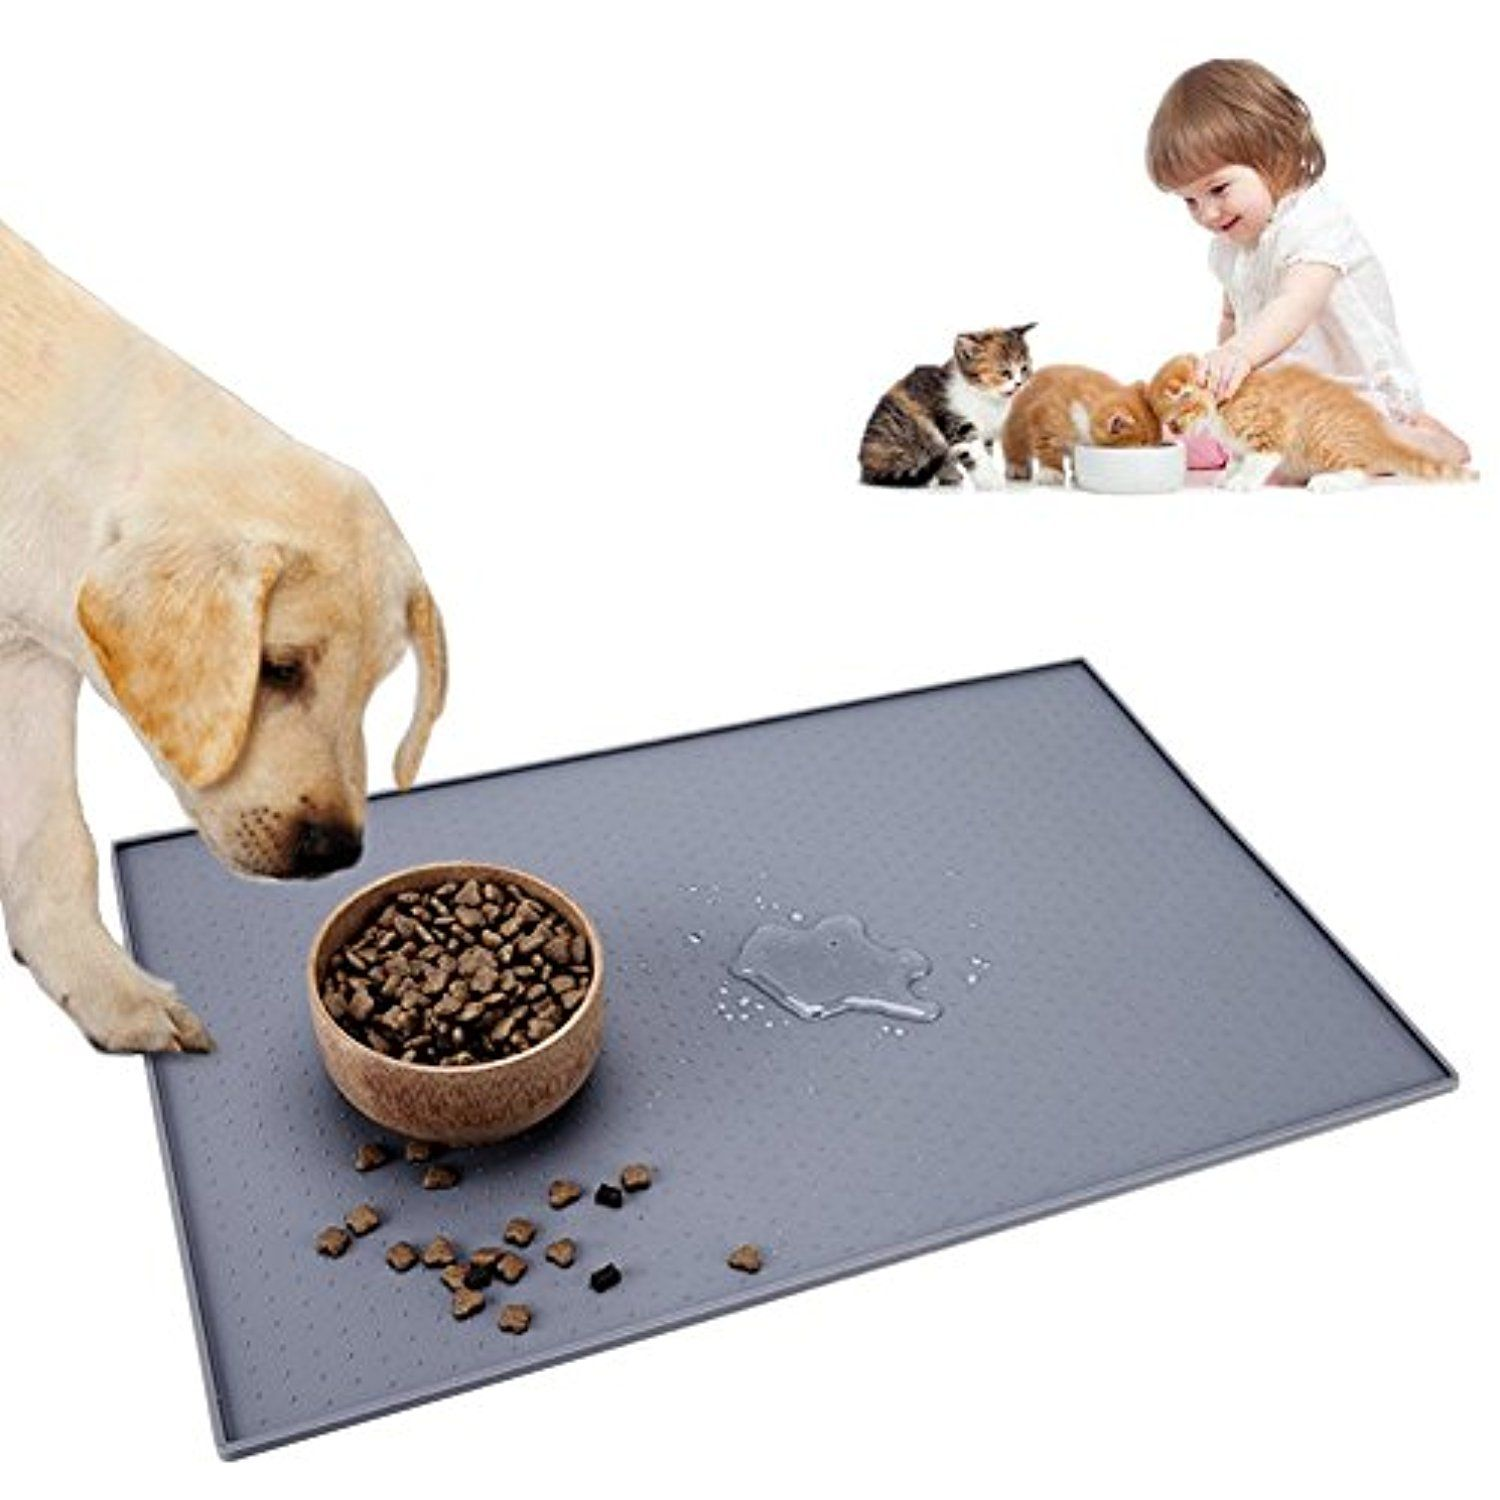 Pet food mat for dogs and cats 24x16 large washable